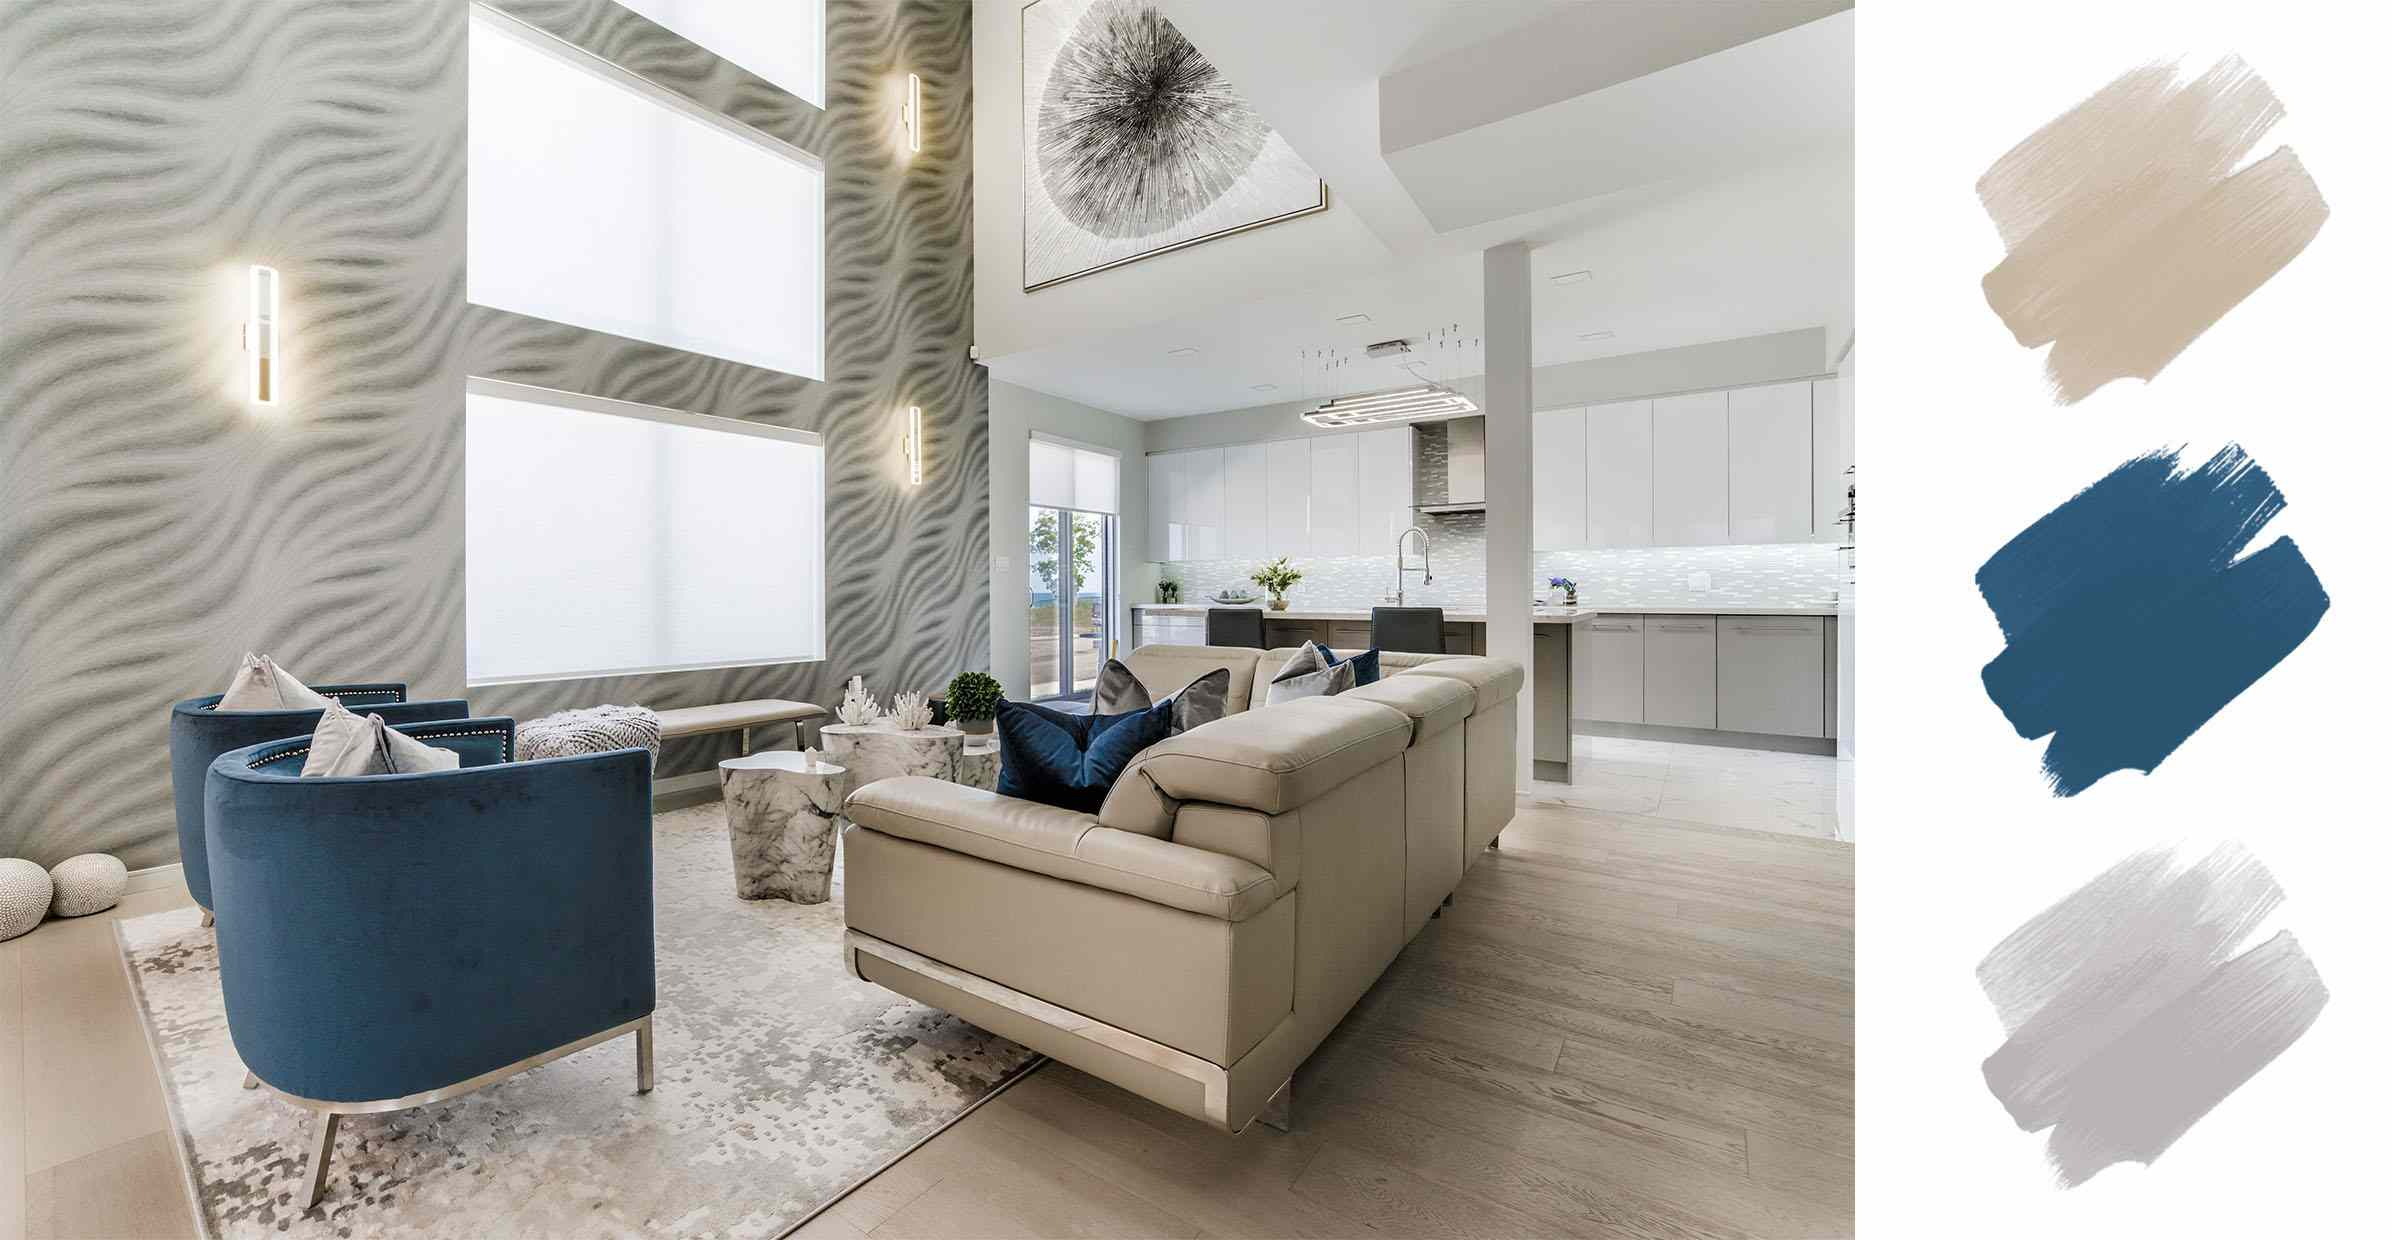 best interior color schemes - blue and tan and gray